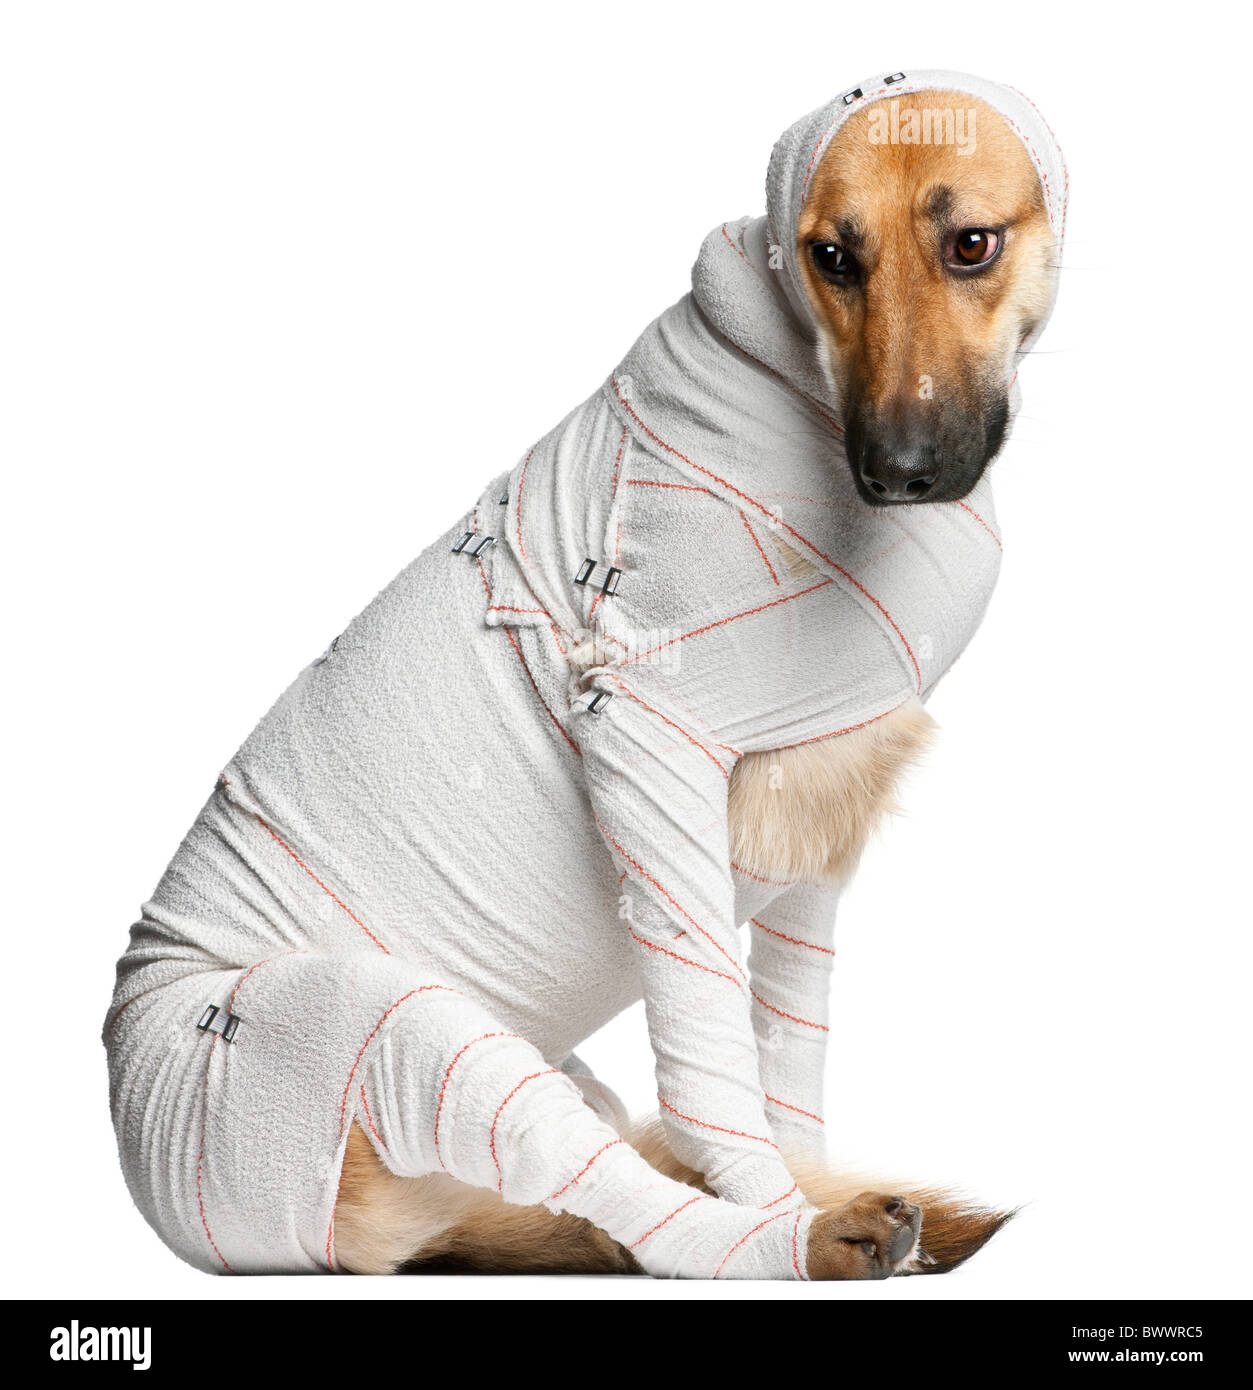 German Shepherd puppy in bandages, 4 months old, sitting in front of white background - Stock Image